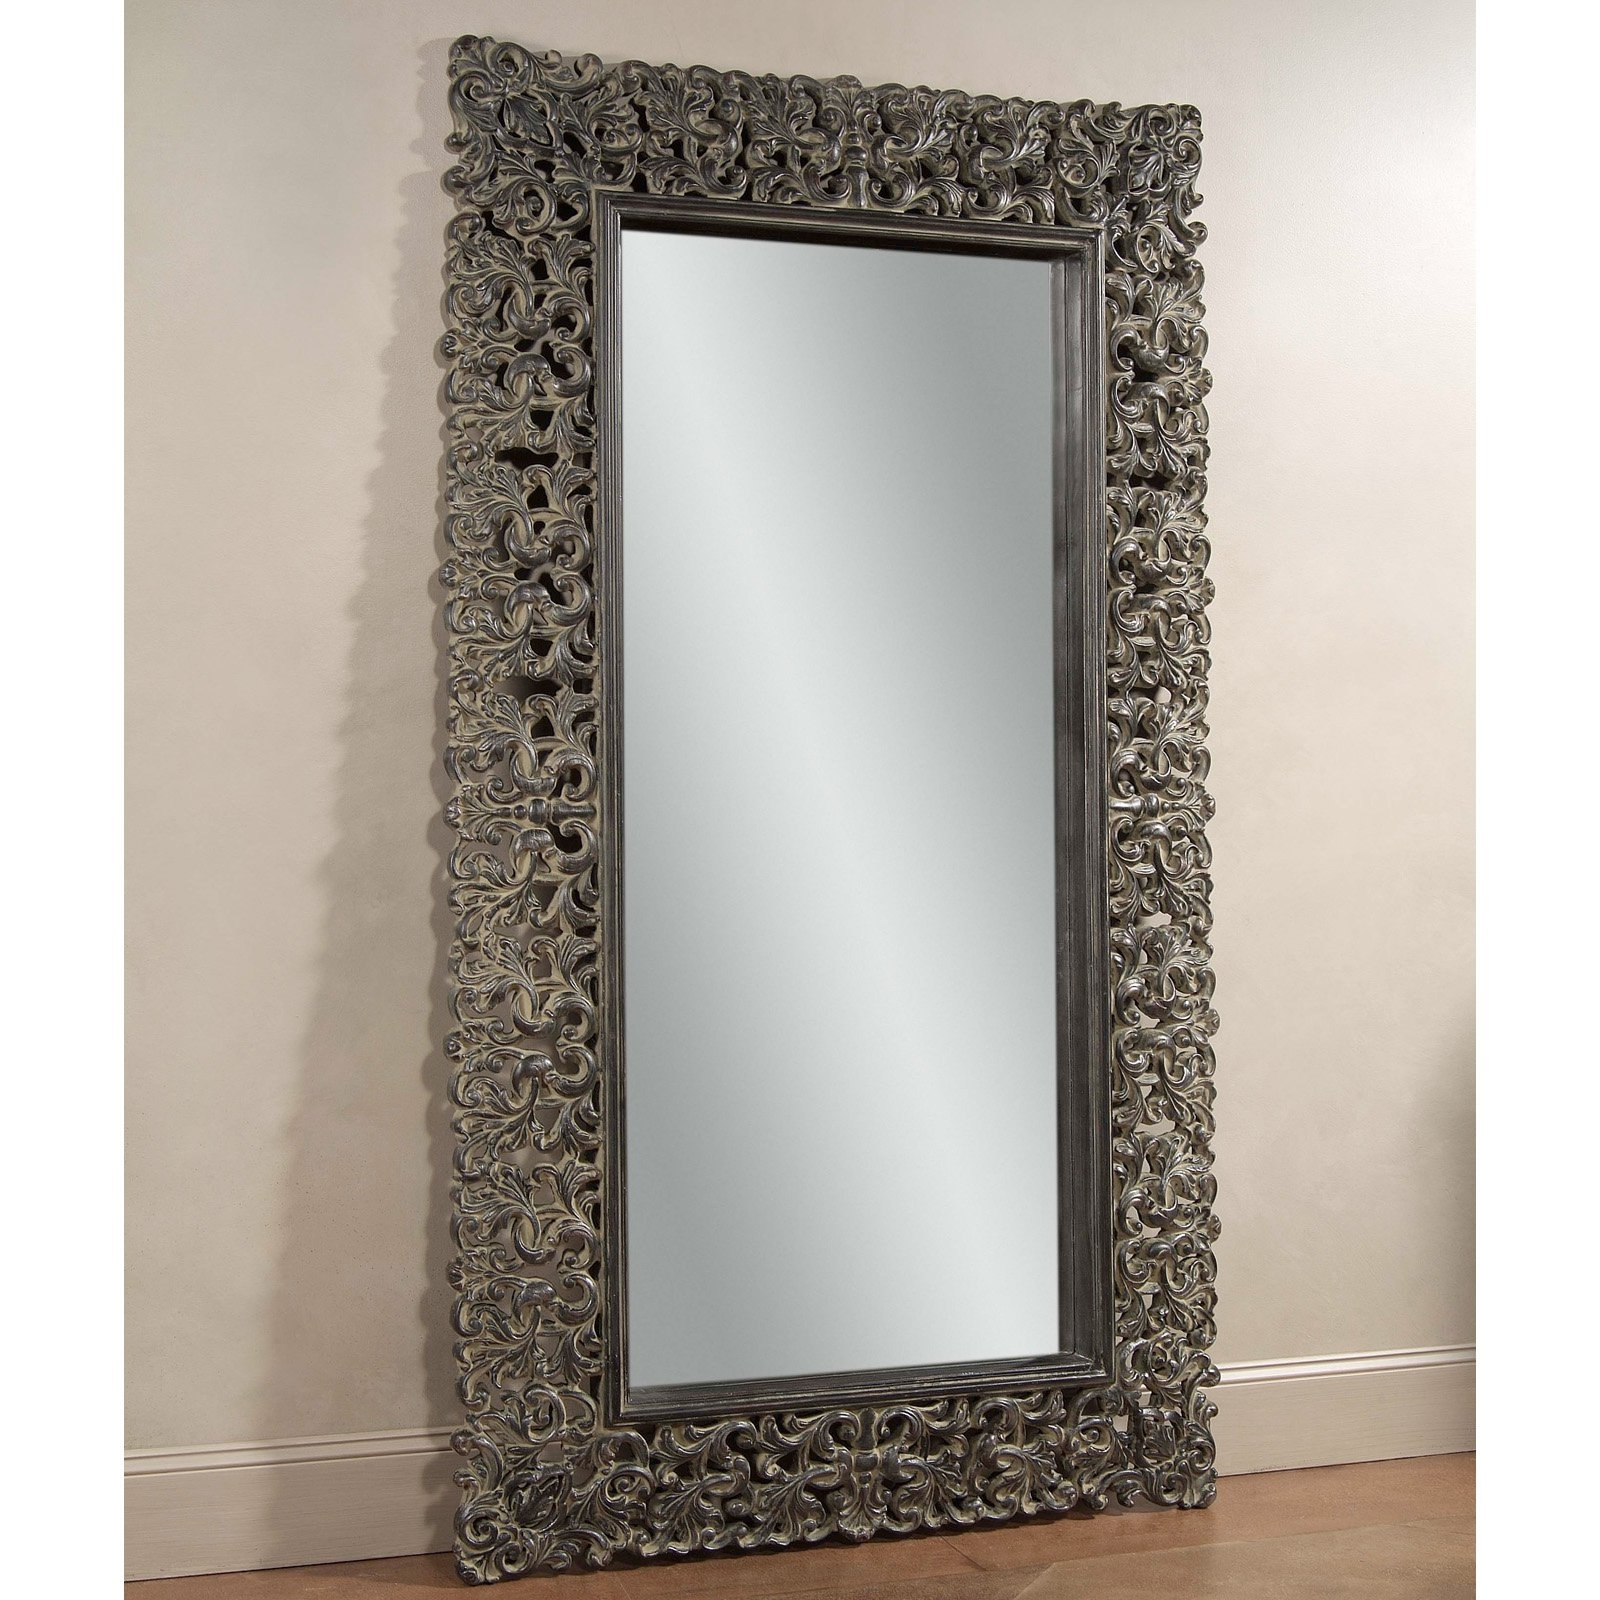 Maltese Leaner Mirror 48w X 87h In Item Hn Bam252 From High Within Ornate Leaner Mirror (Image 7 of 15)